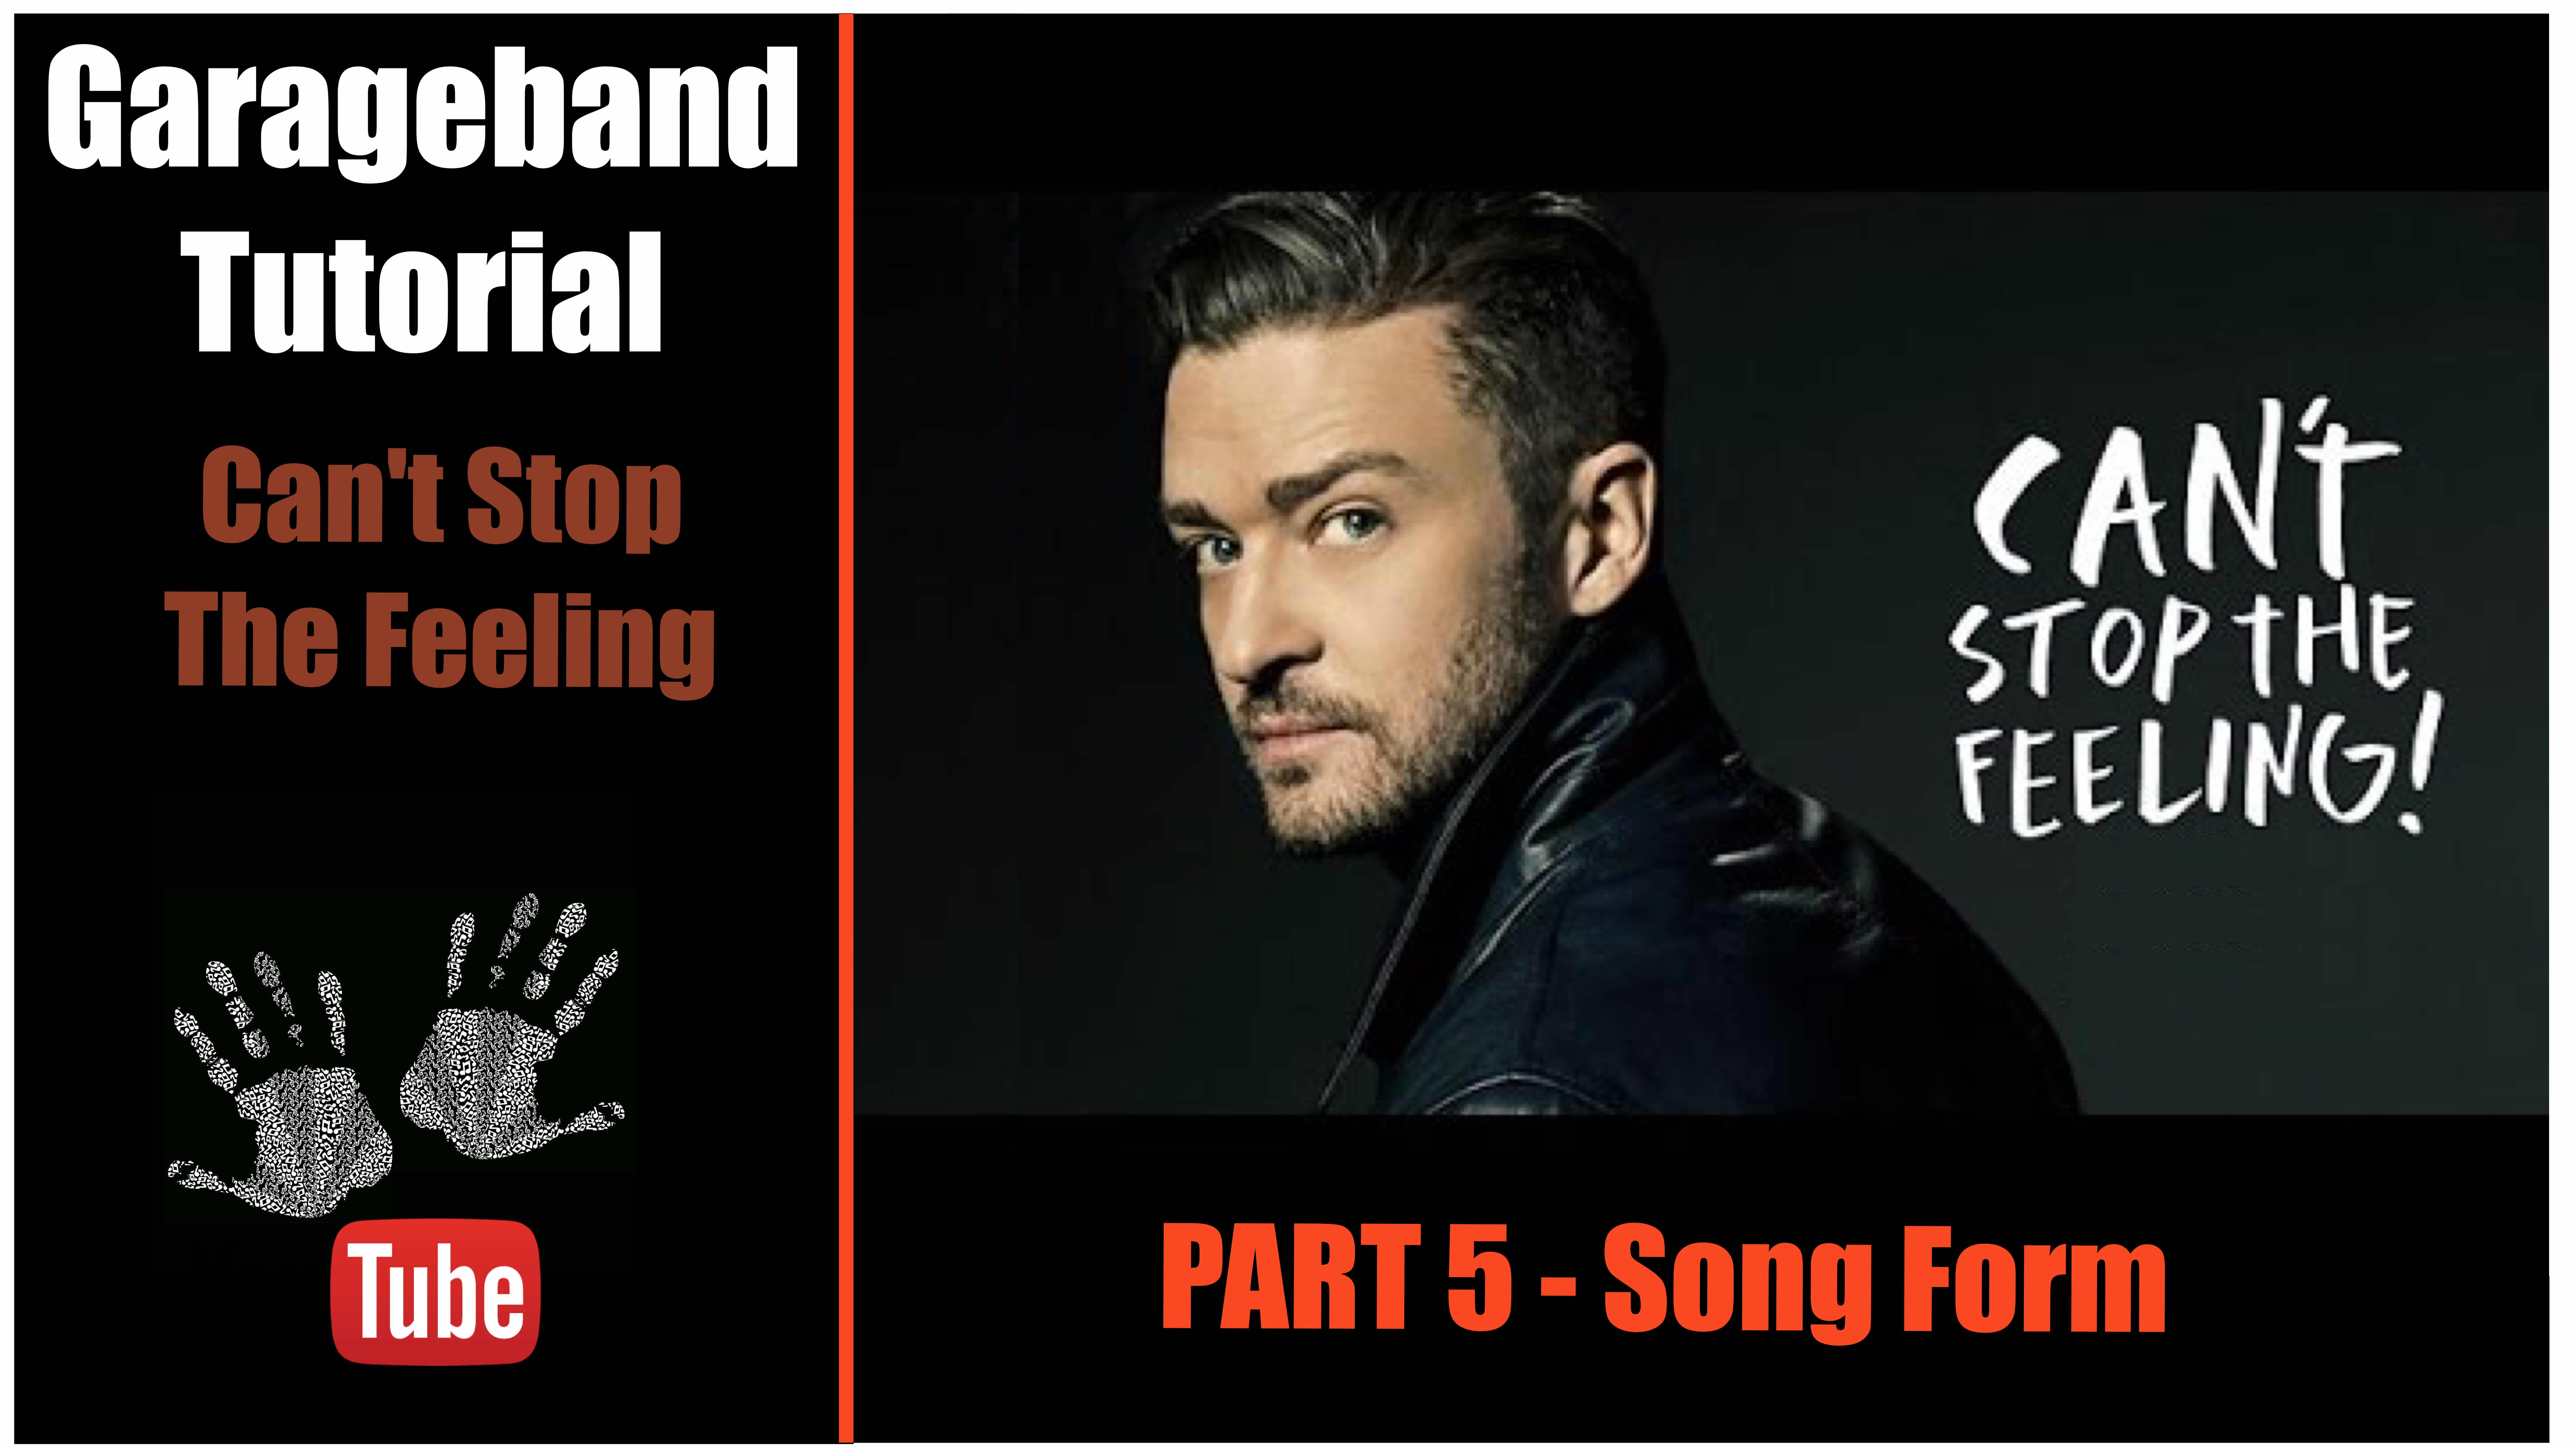 Ipad music resource cover song cant stop the feeling music watch our 5 part series and learn how to play cant stop the feeling on the ipad using garageband baditri Images